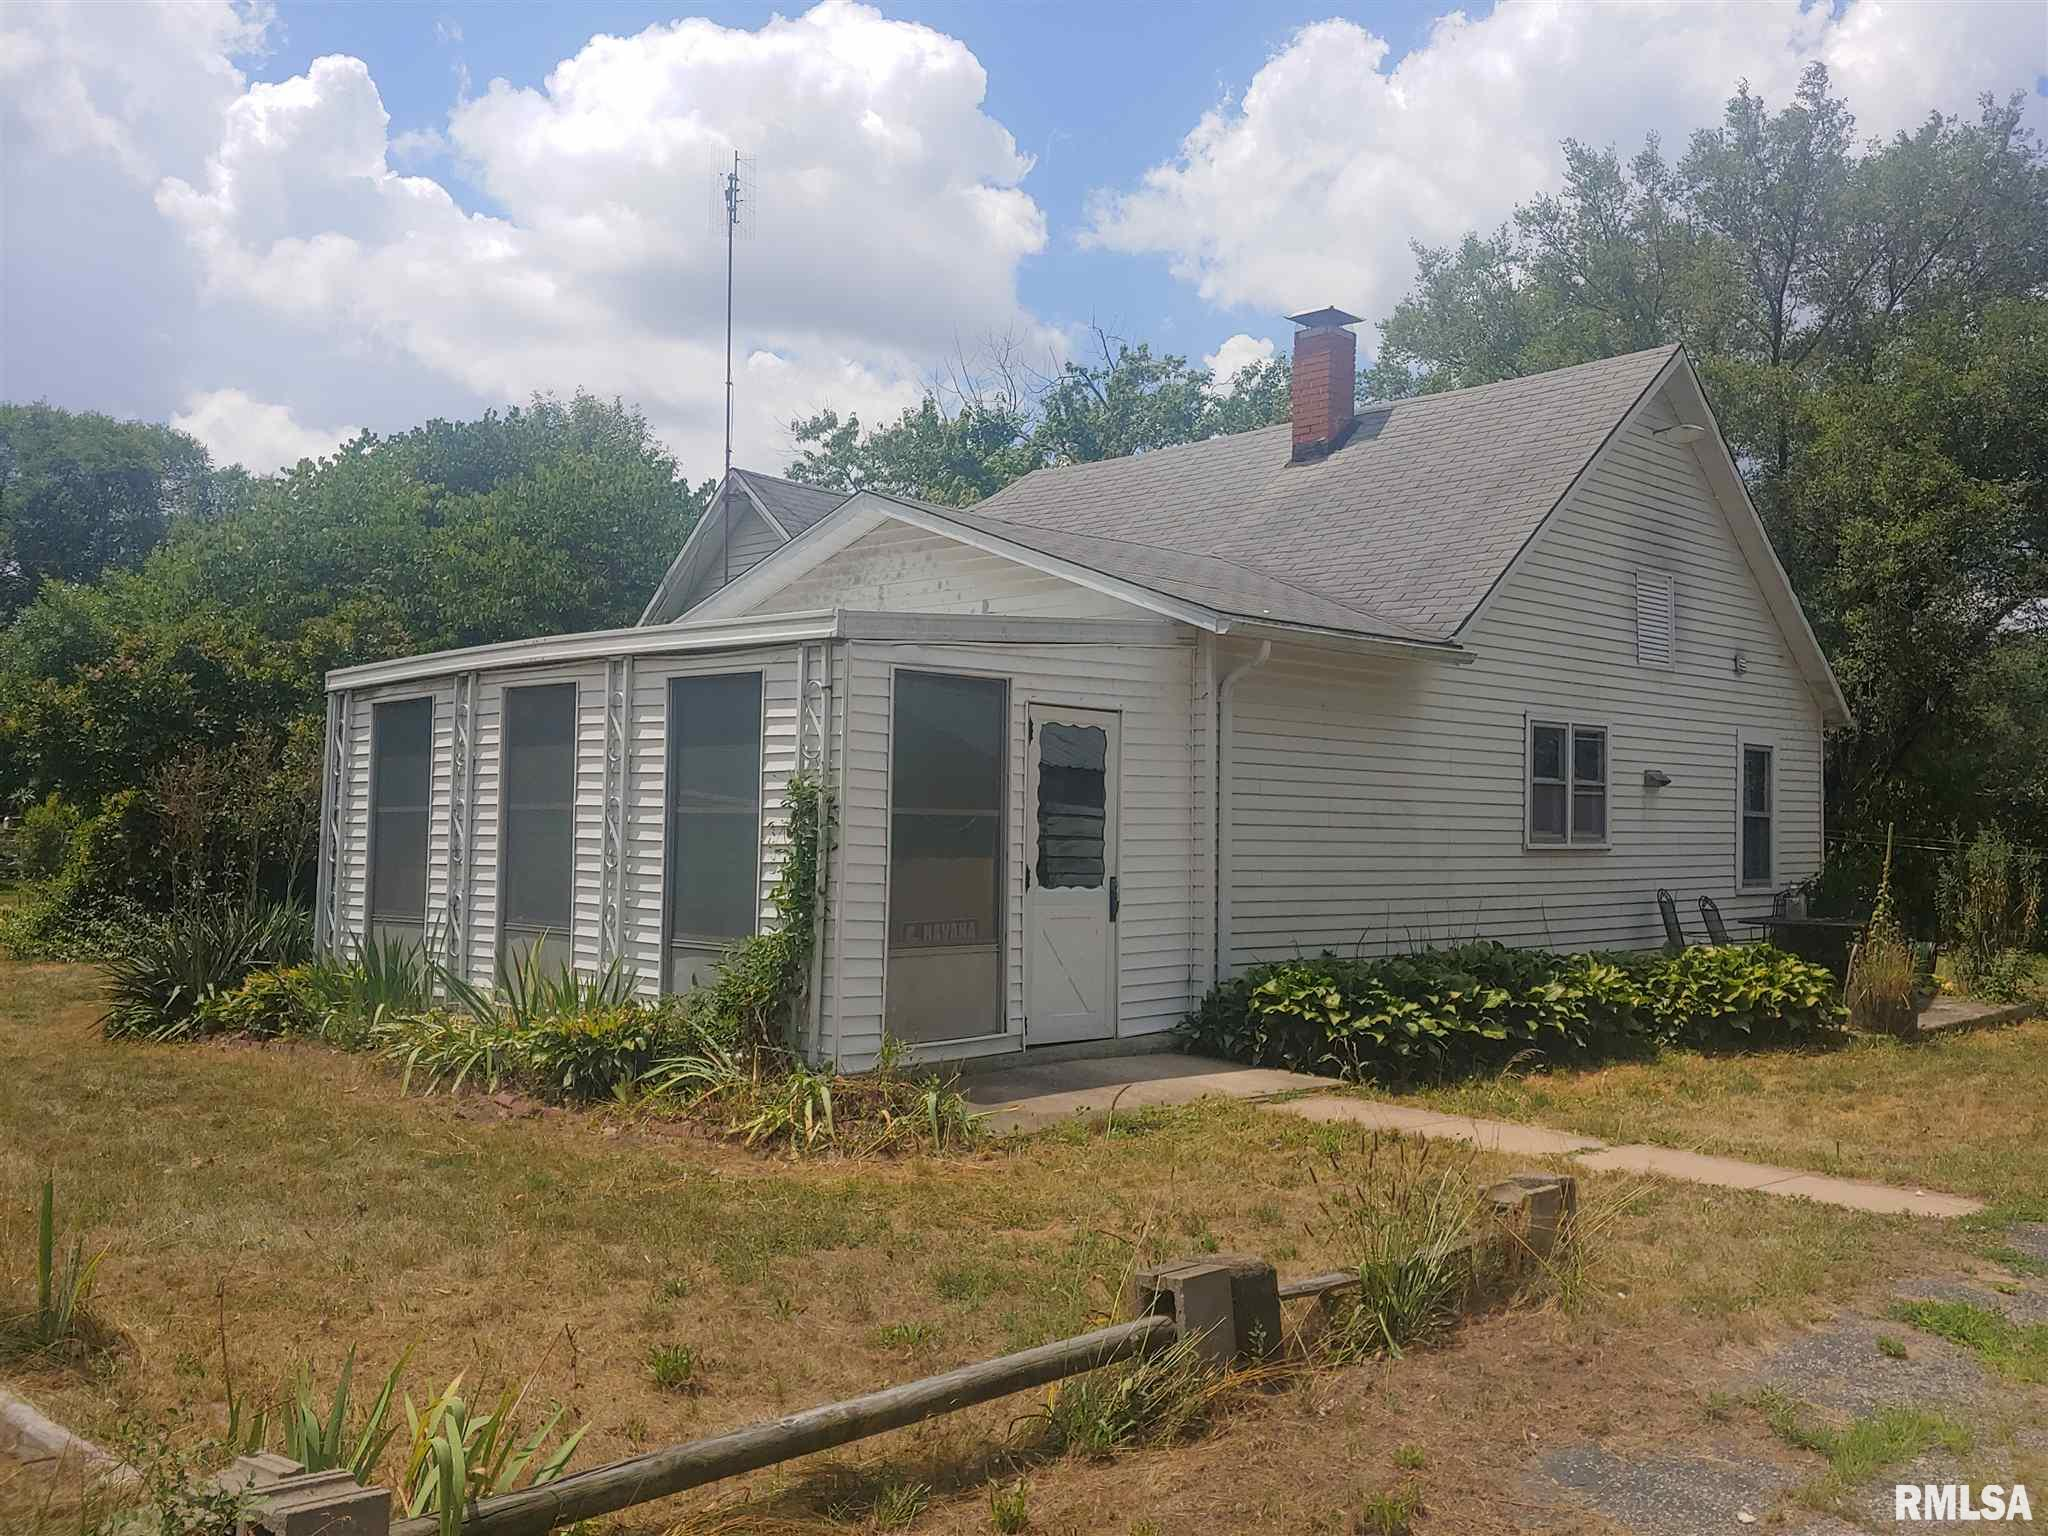 202 N OLIVE Property Photo - Bath, IL real estate listing